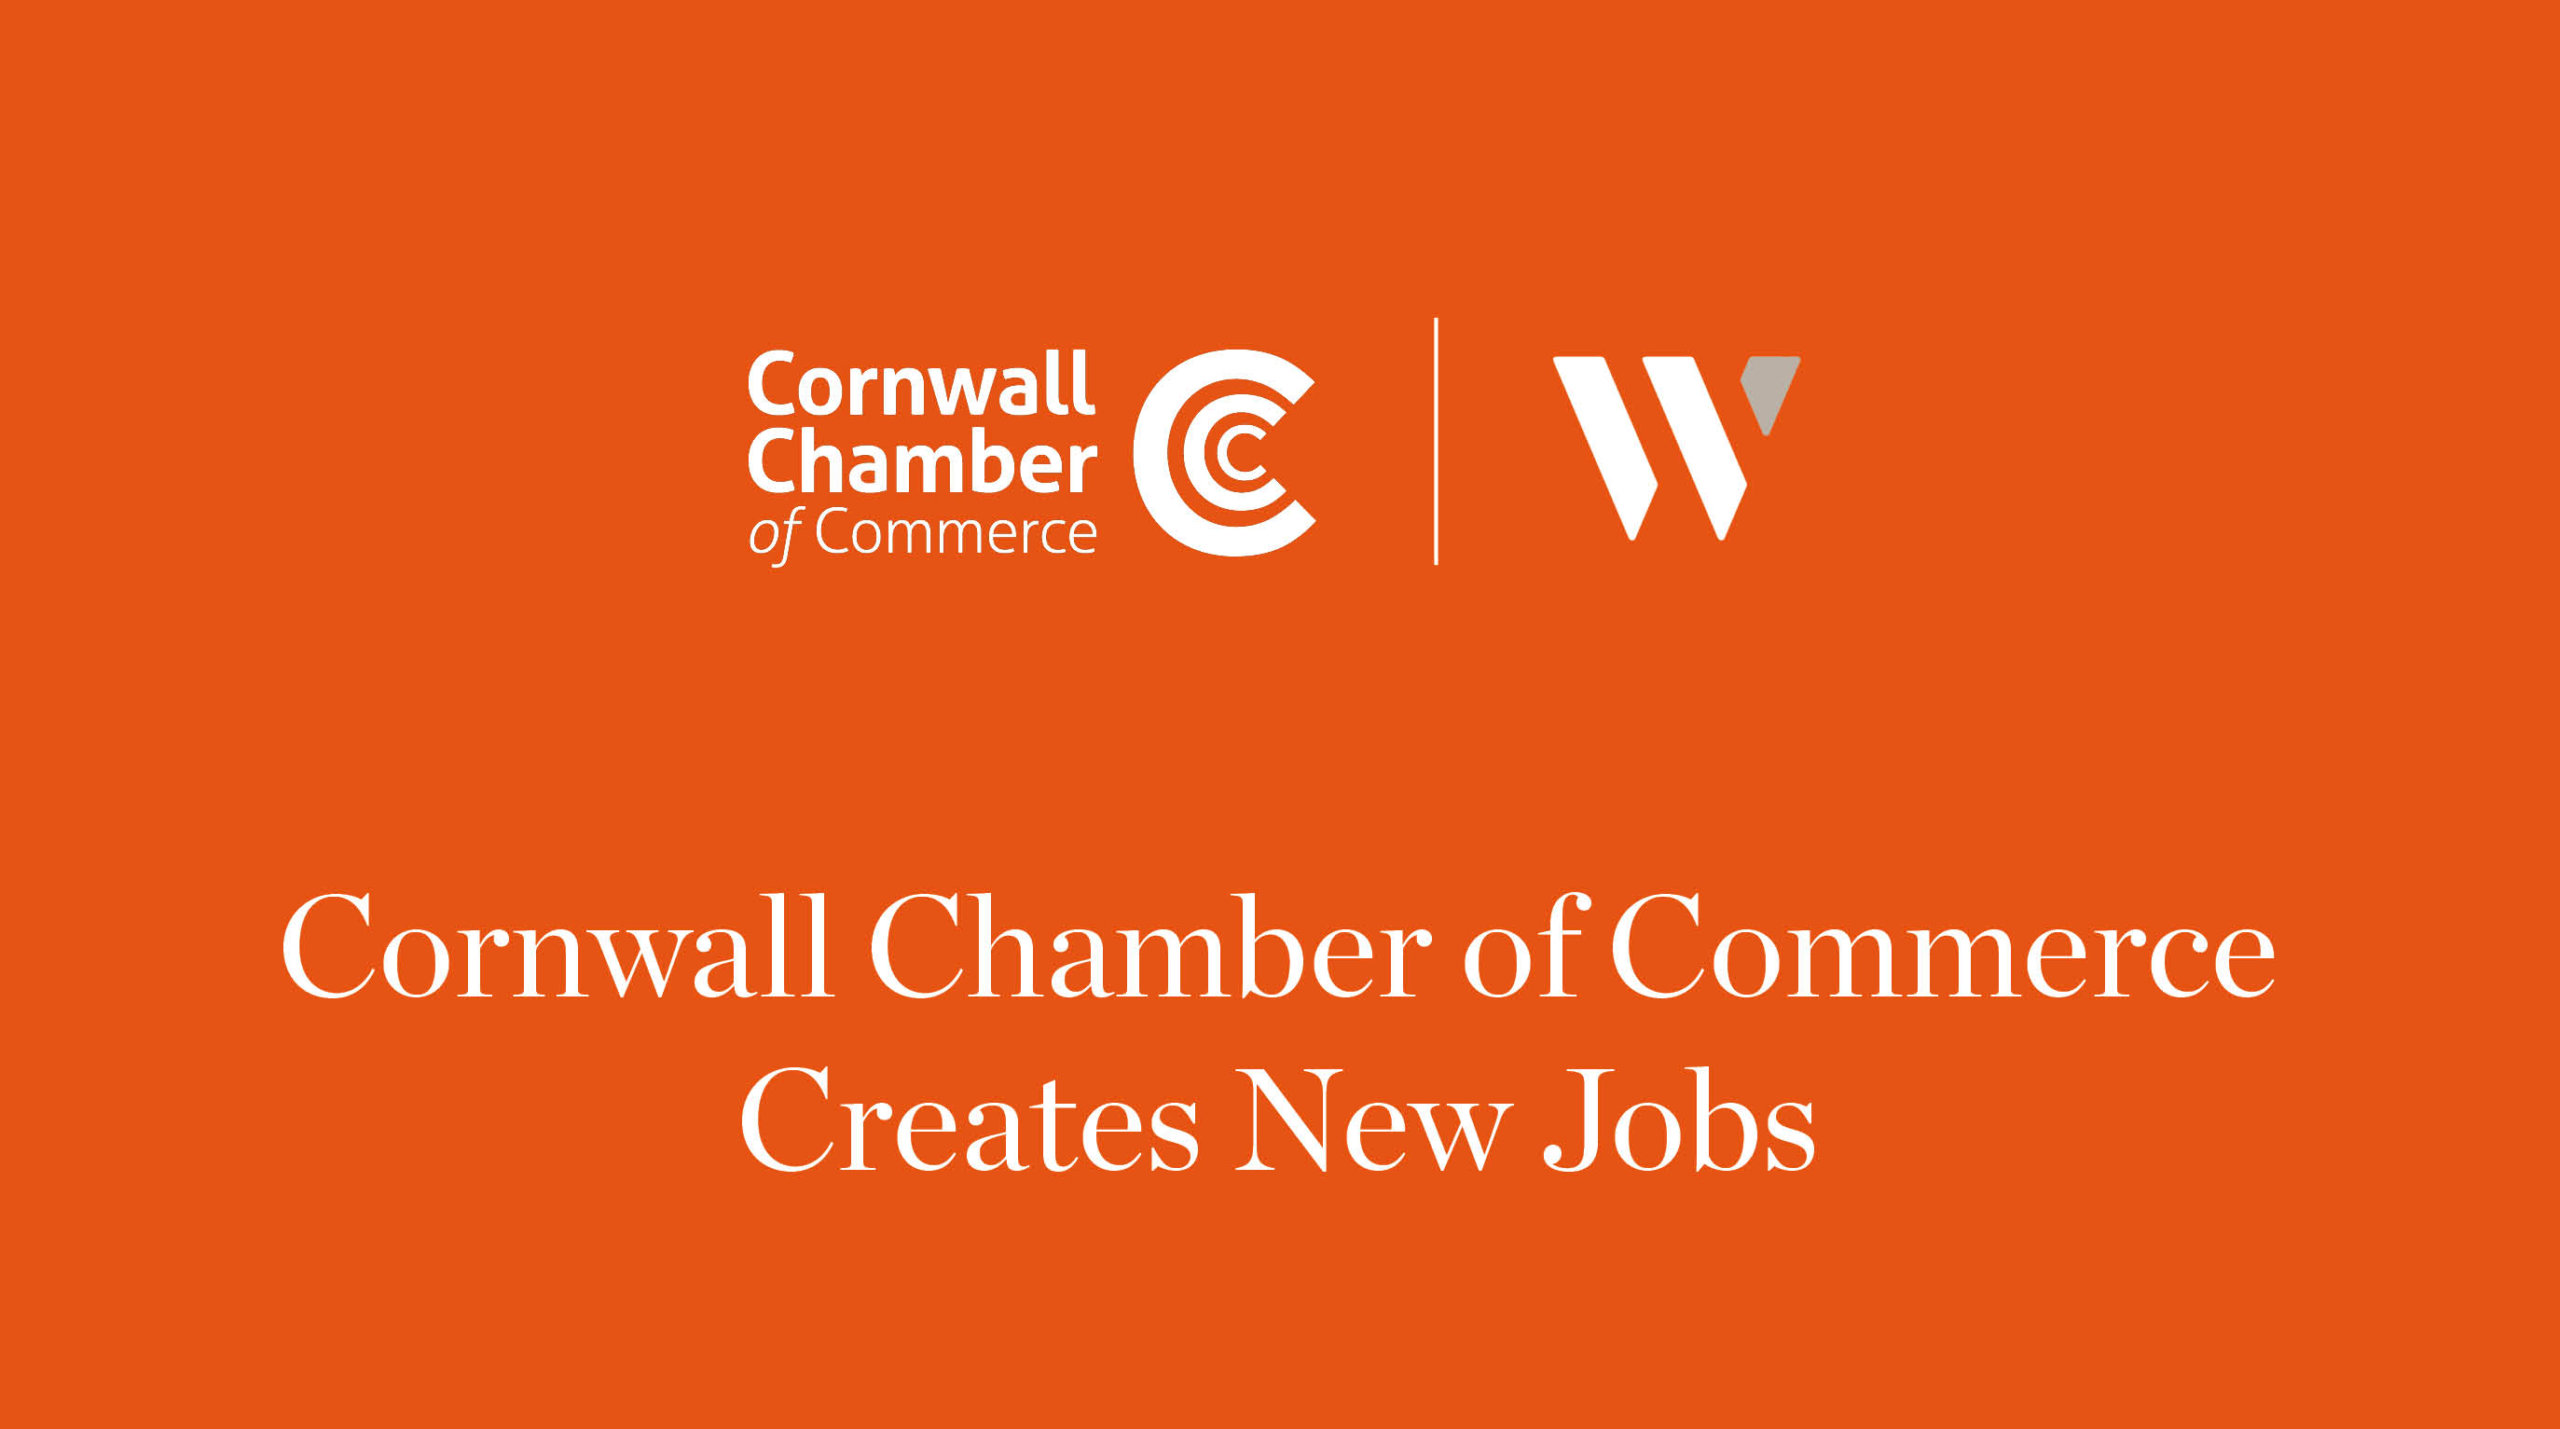 Cornwall Chamber of Commerce Creates New Jobs